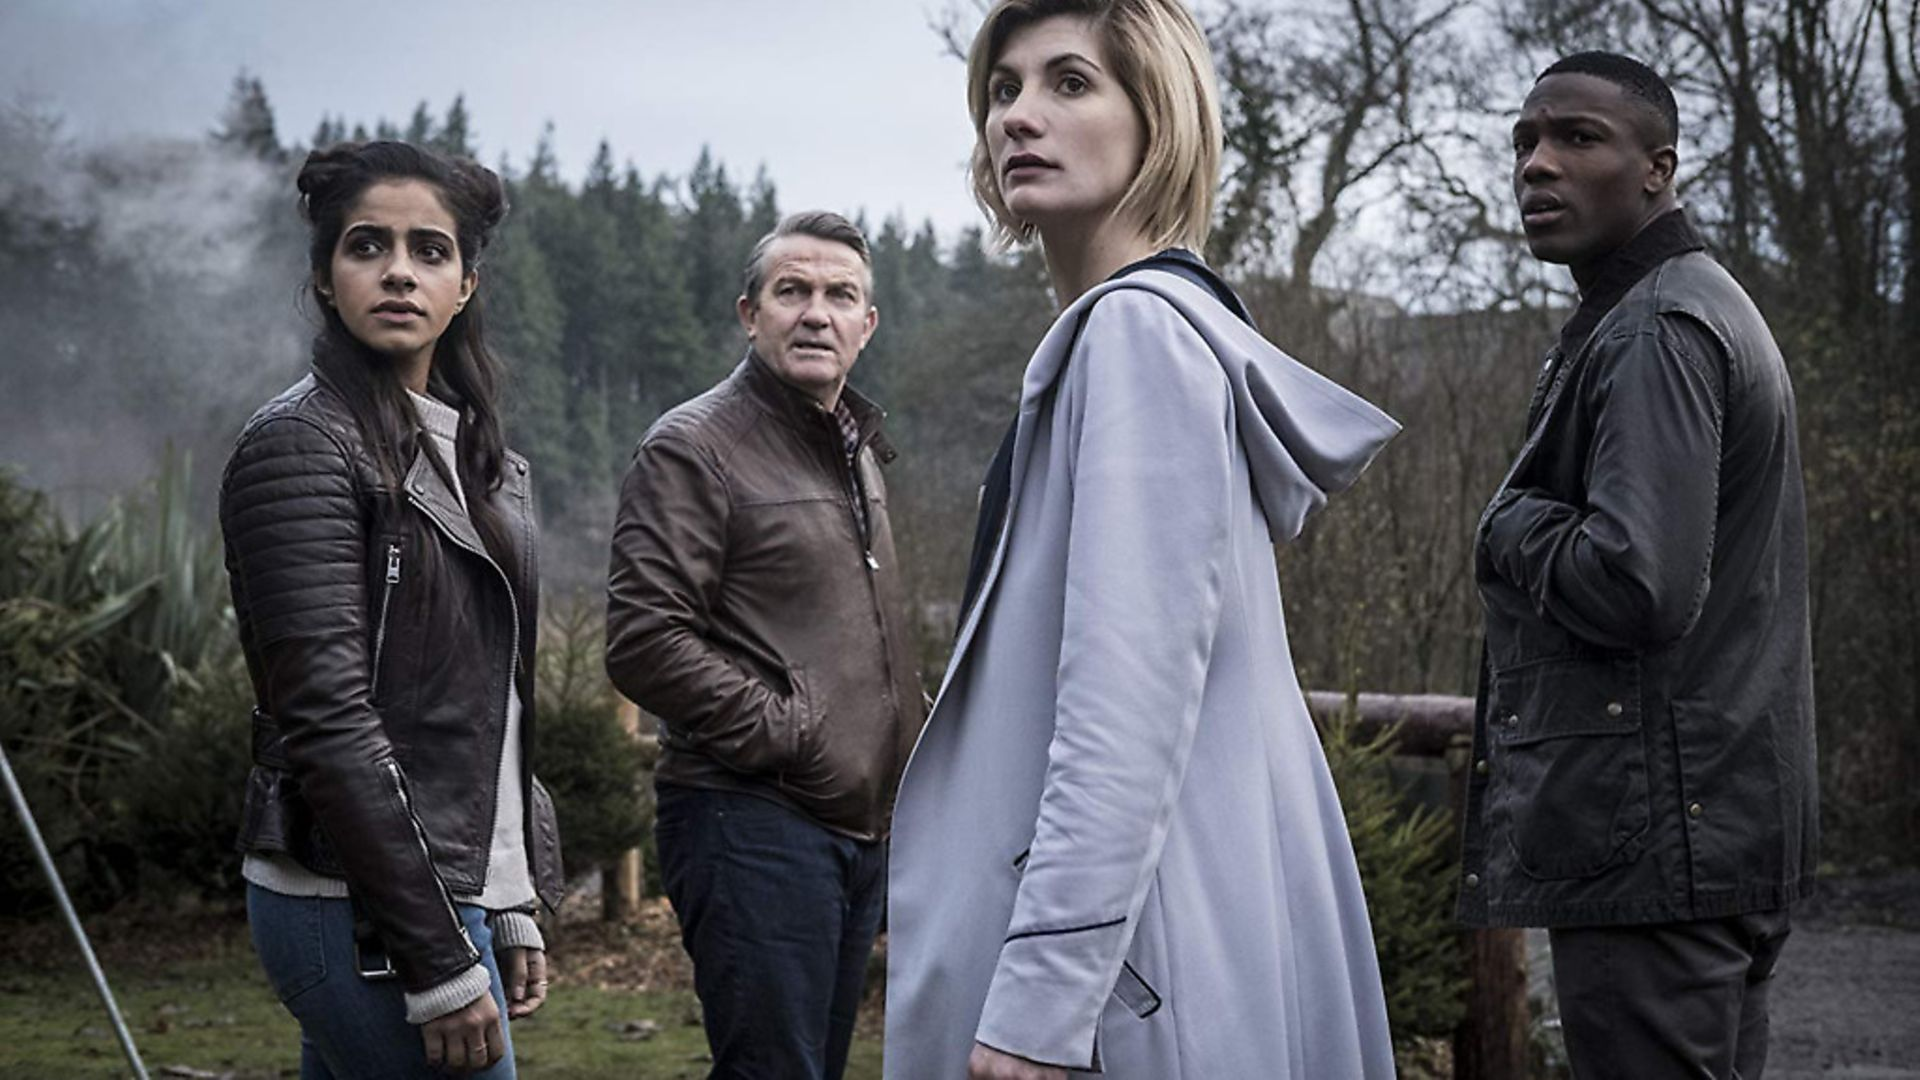 FLAWLESS: Jodie Whittaker as the Doctor in Doctor Who. Image: BBC - Credit: Archant